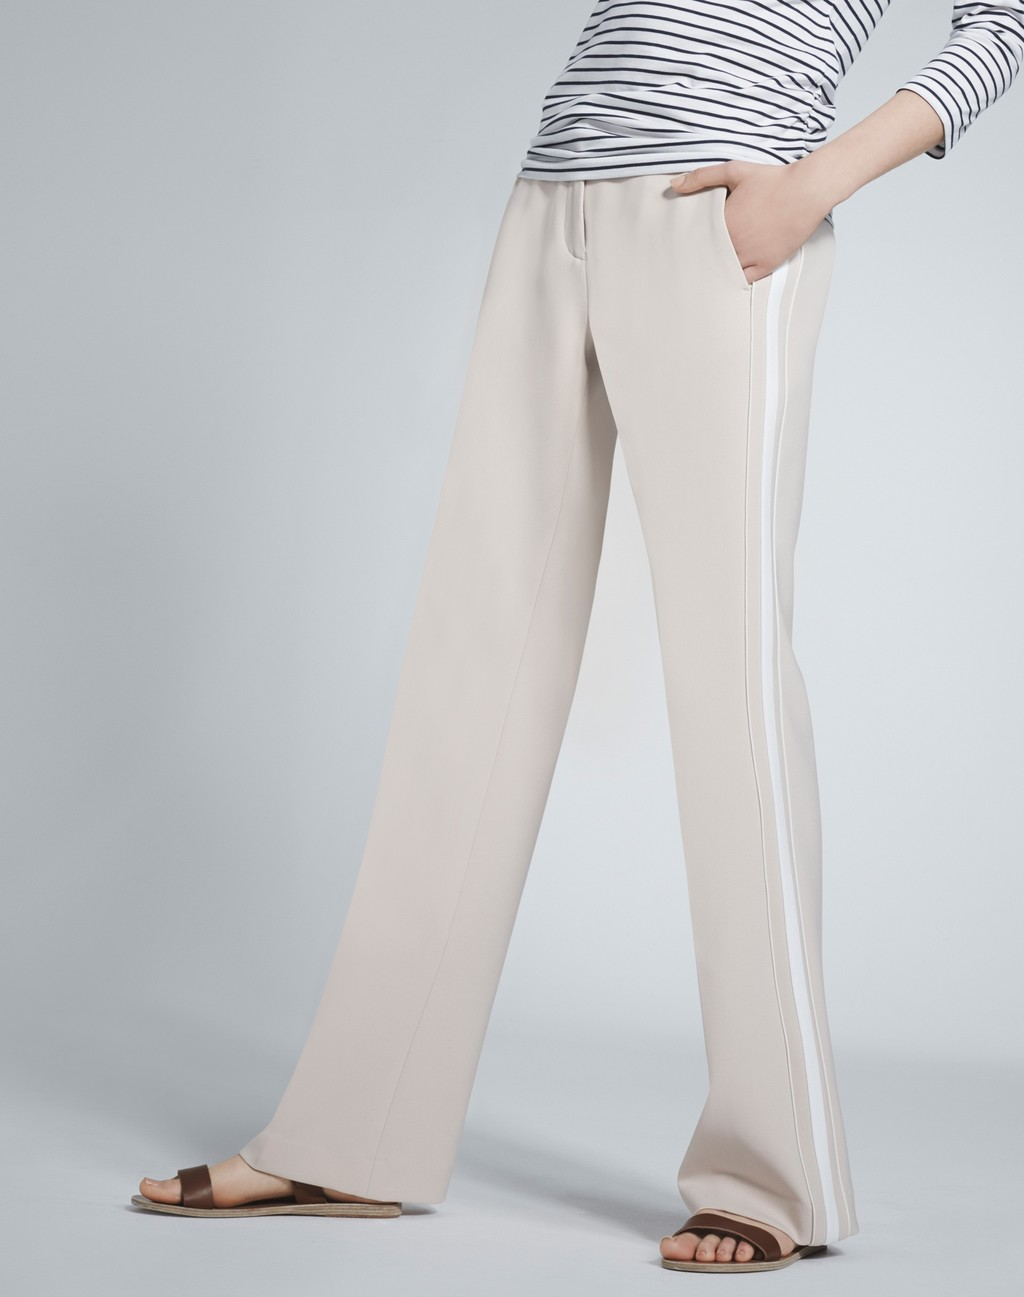 Side Stripe Trouser Oyster/Cream - length: standard; pattern: plain; waist: mid/regular rise; secondary colour: ivory/cream; predominant colour: stone; fibres: polyester/polyamide - 100%; texture group: crepes; fit: wide leg; pattern type: fabric; style: standard; occasions: creative work; season: s/s 2016; wardrobe: basic